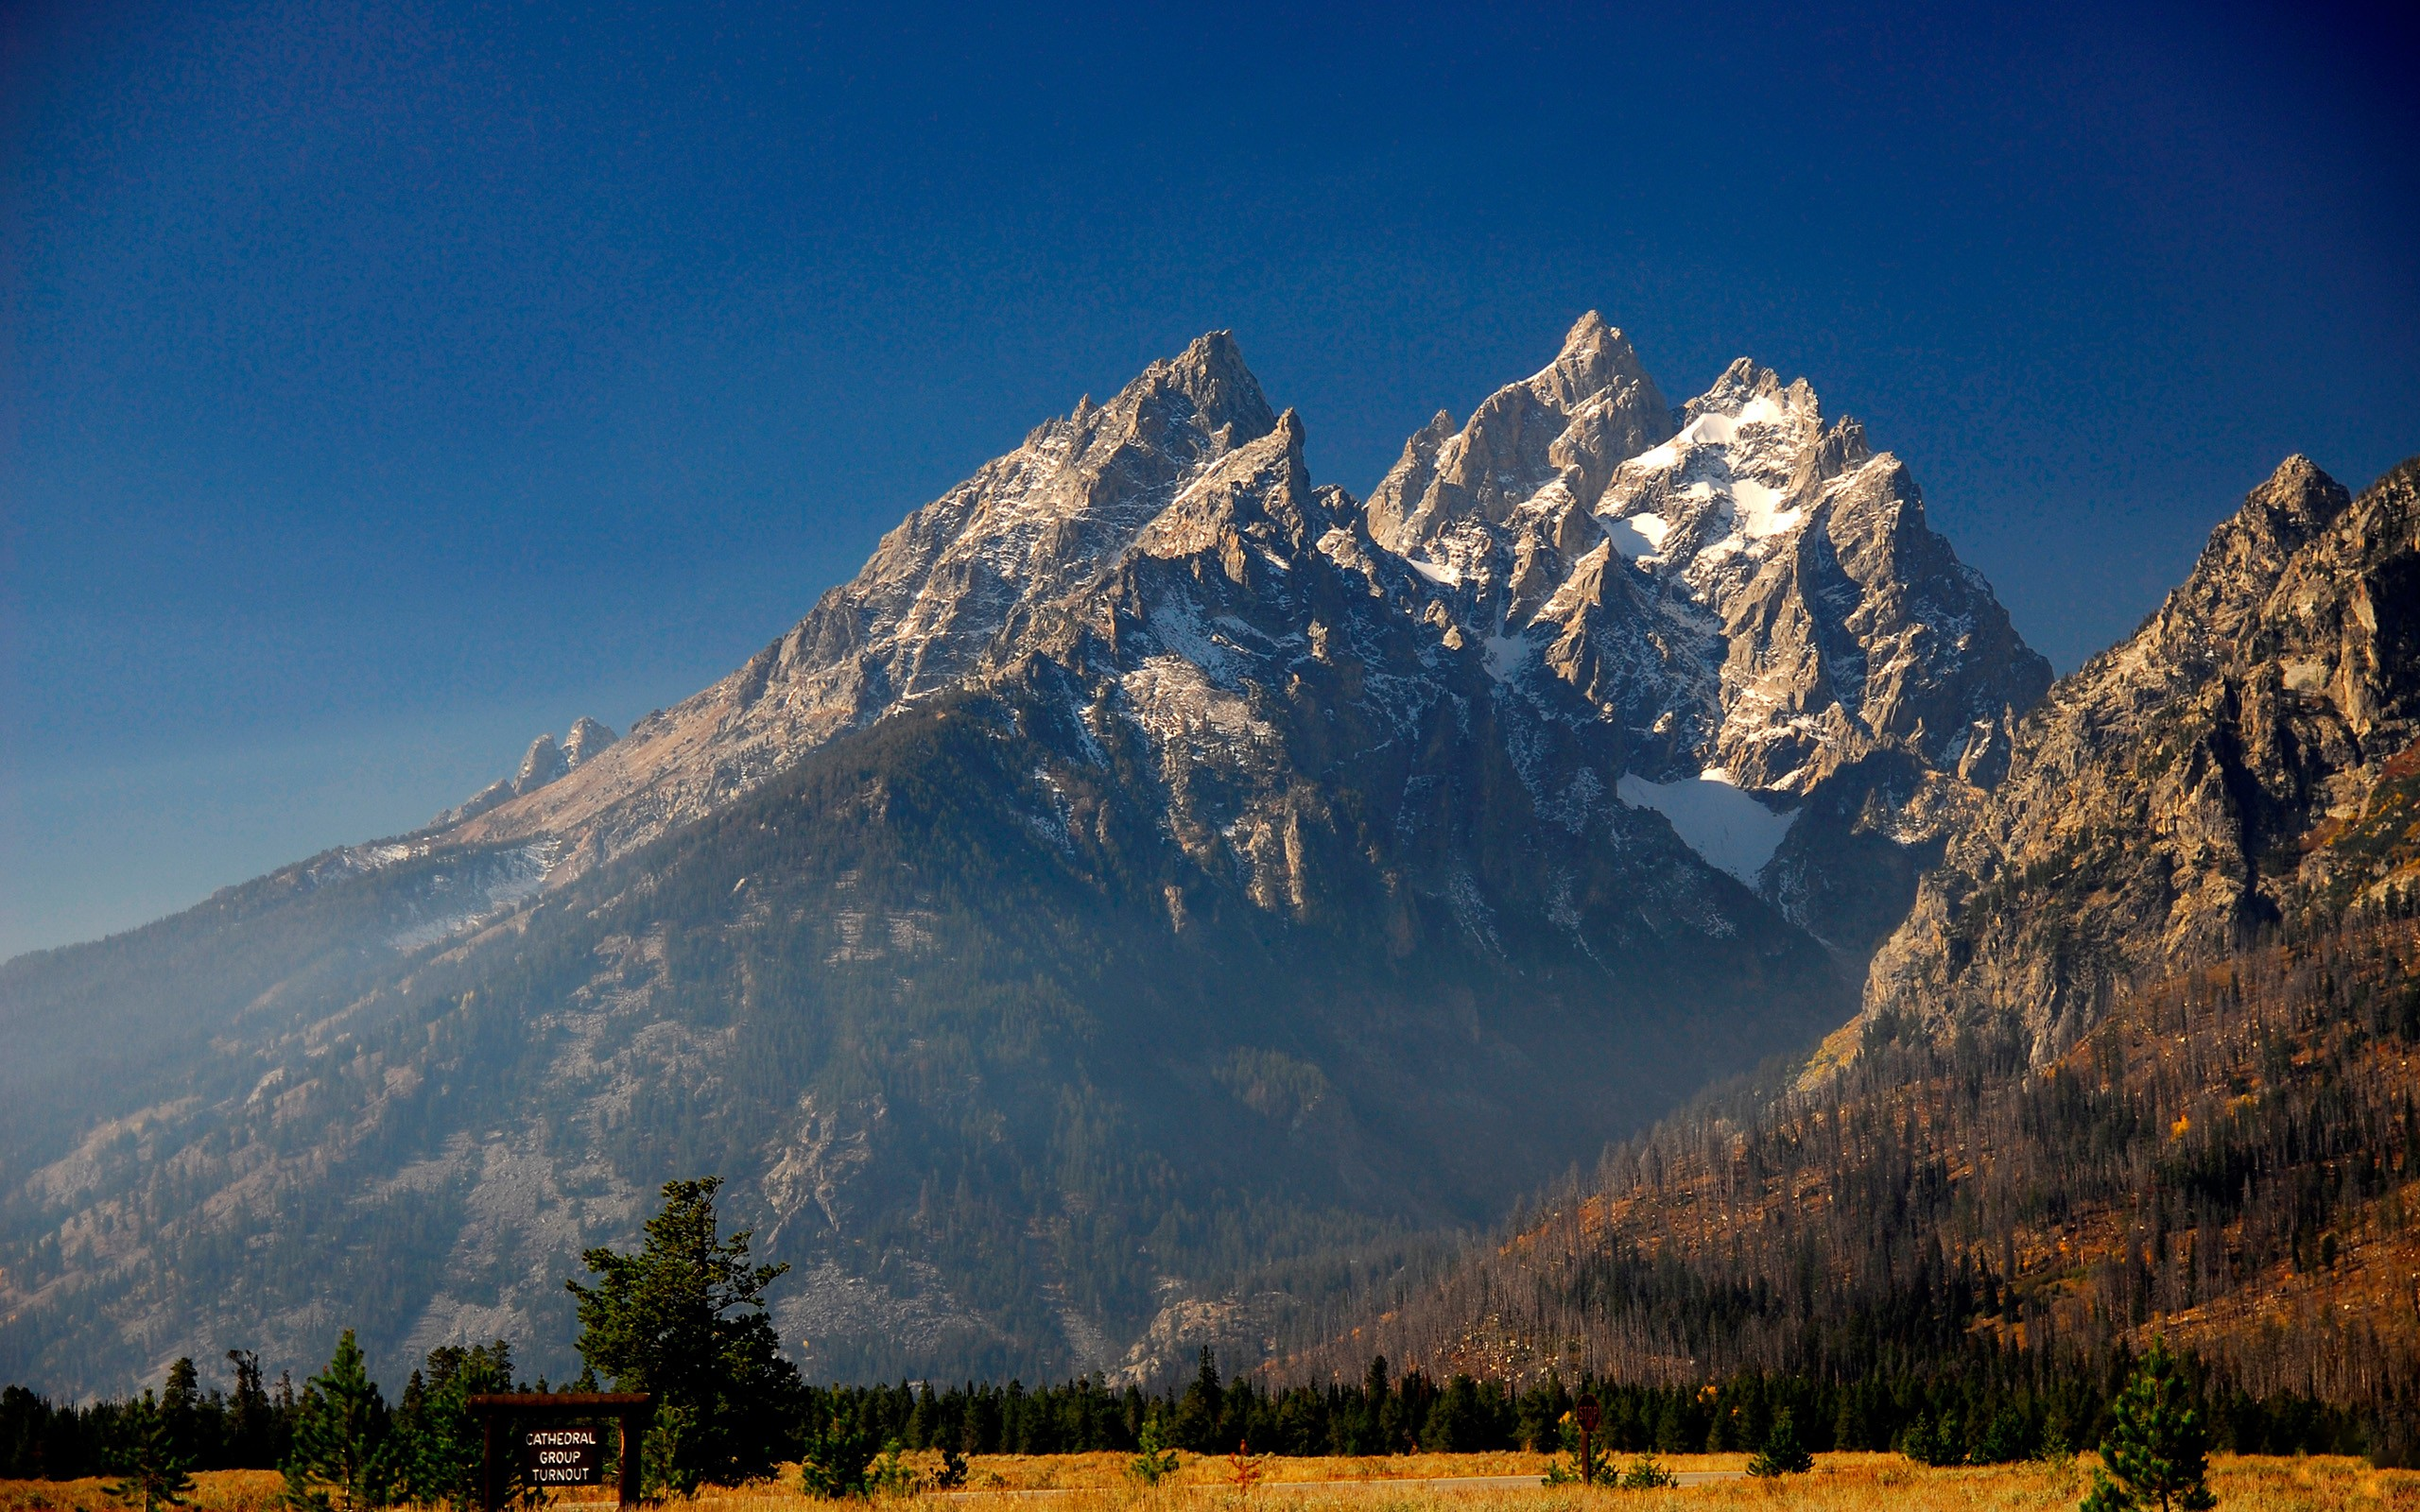 alps images